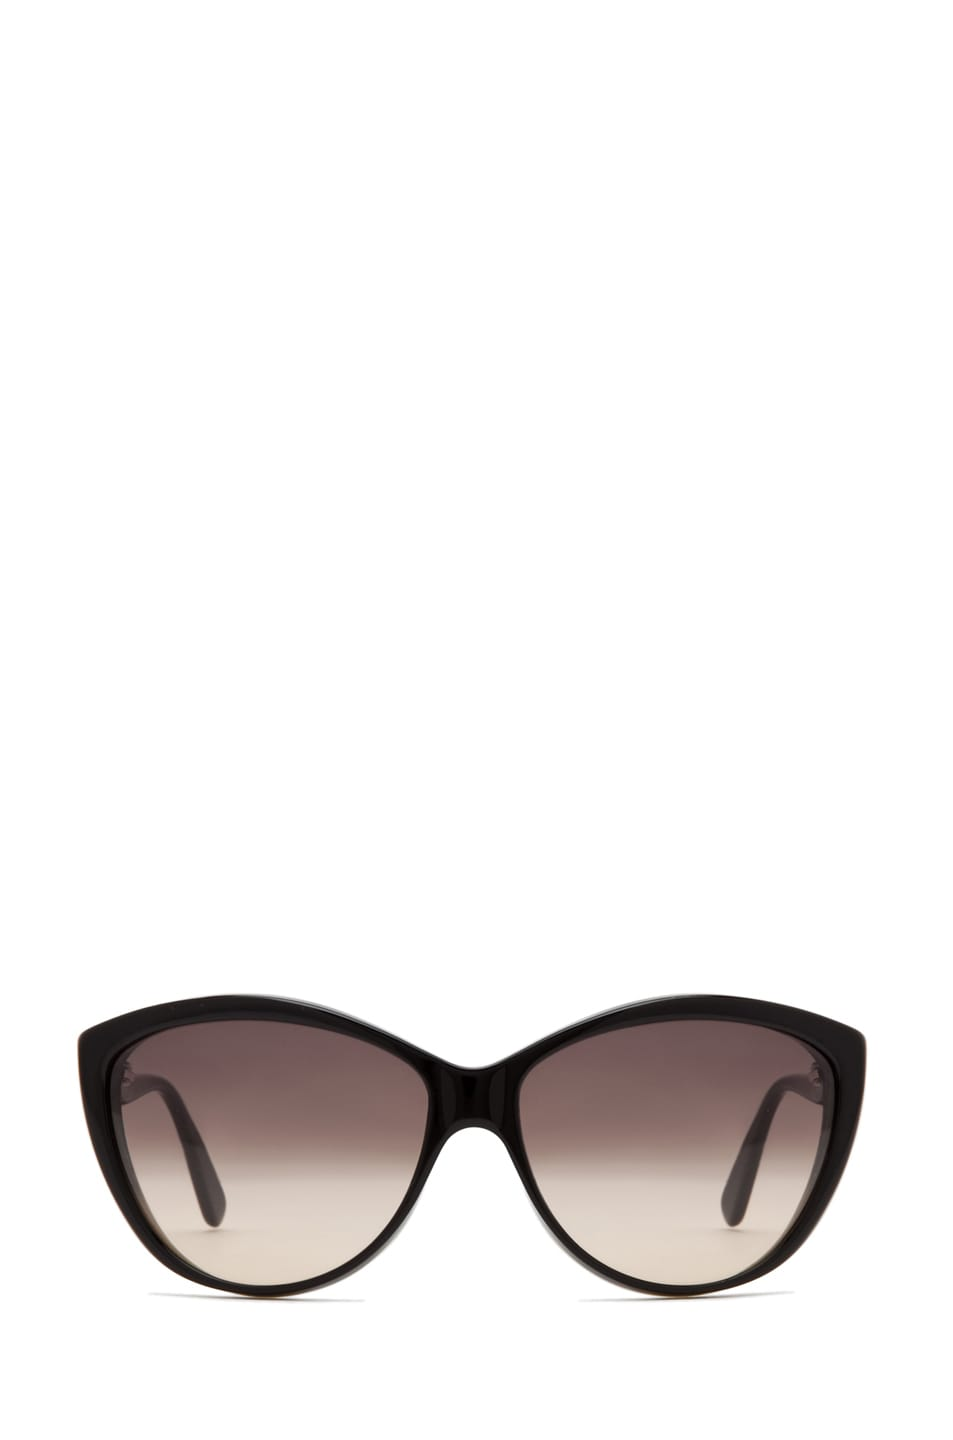 Image 1 of Alexander McQueen 4147 Sunglasses in Black Horn Black